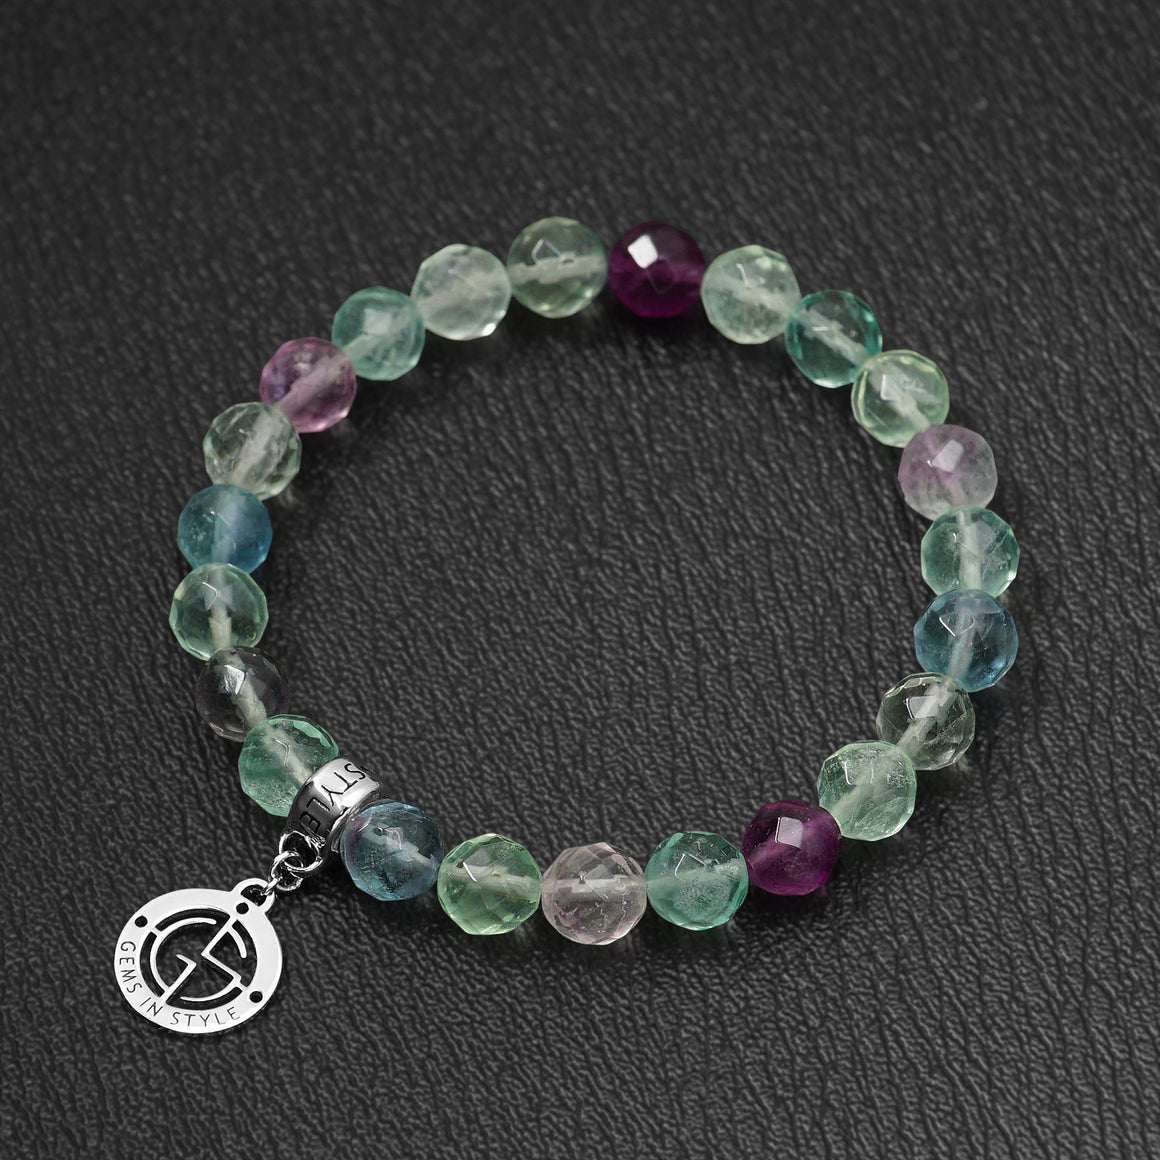 Fluorite bracelet with silver charm by Gems In Style Jewellery.